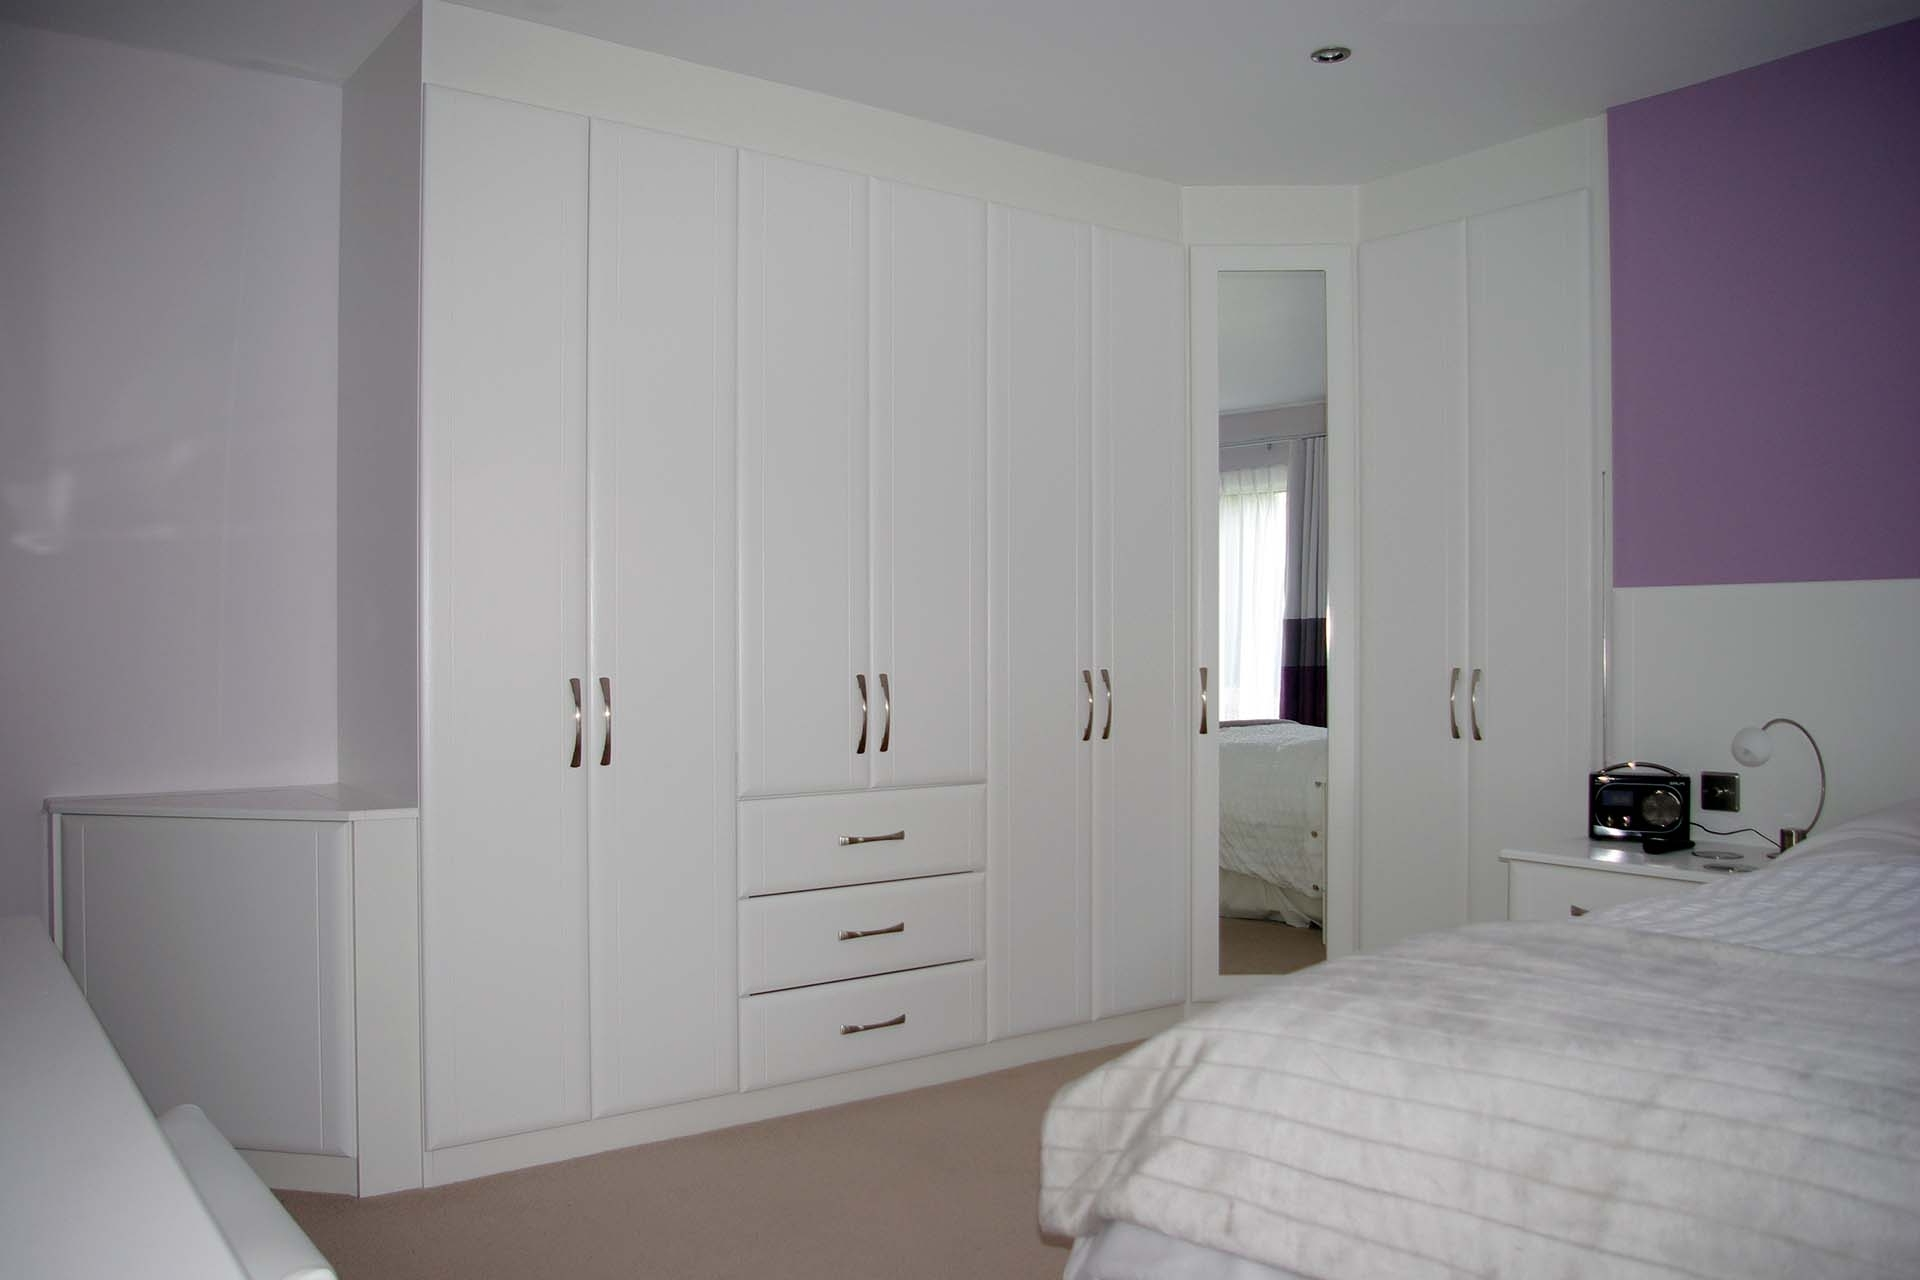 White Bedroom Wardrobes With Recent Bedroom: Fitted Bedrooms Wardrobe White Mirror Carpet Elegant (View 13 of 15)